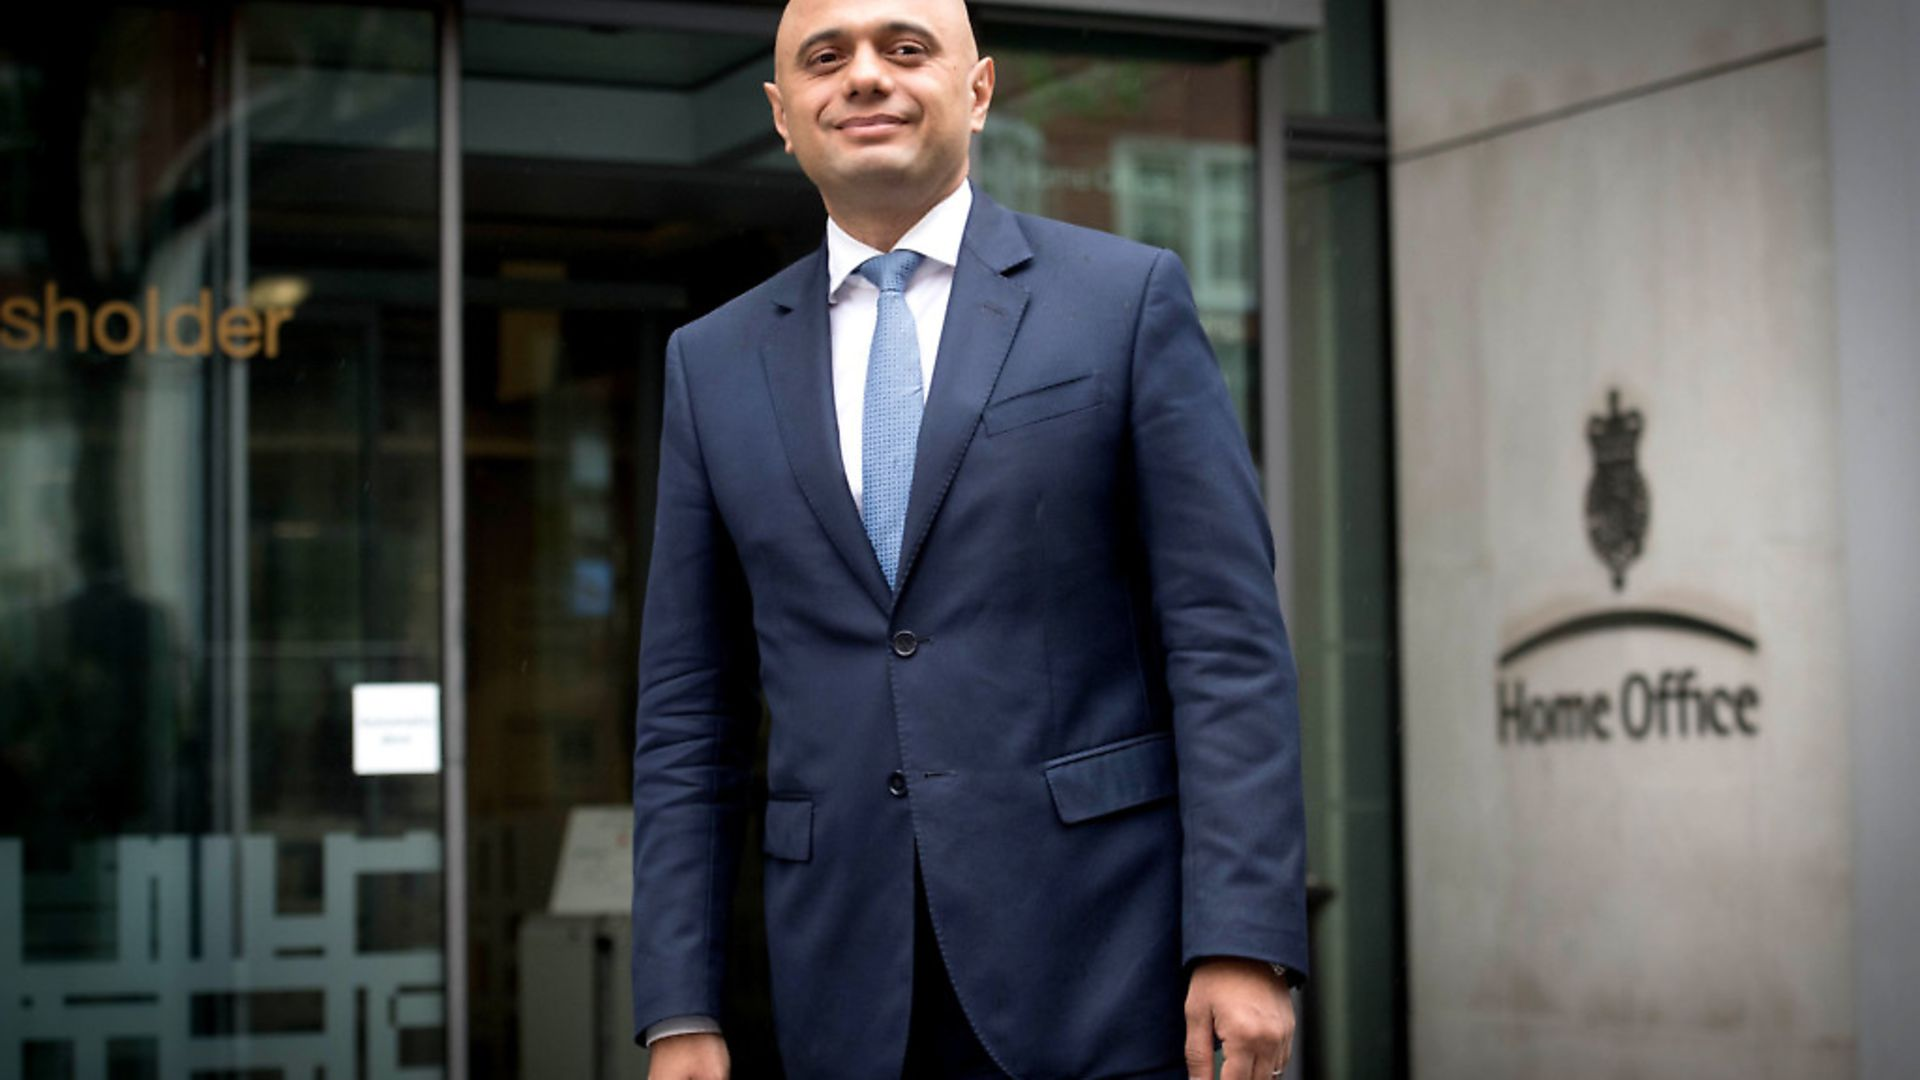 Sajid Javid outside the Home Office in Westminster, London, after he was appointed as the new Home Secretary. Photograph: Stefan Rousseau/PA. - Credit: PA Wire/PA Images